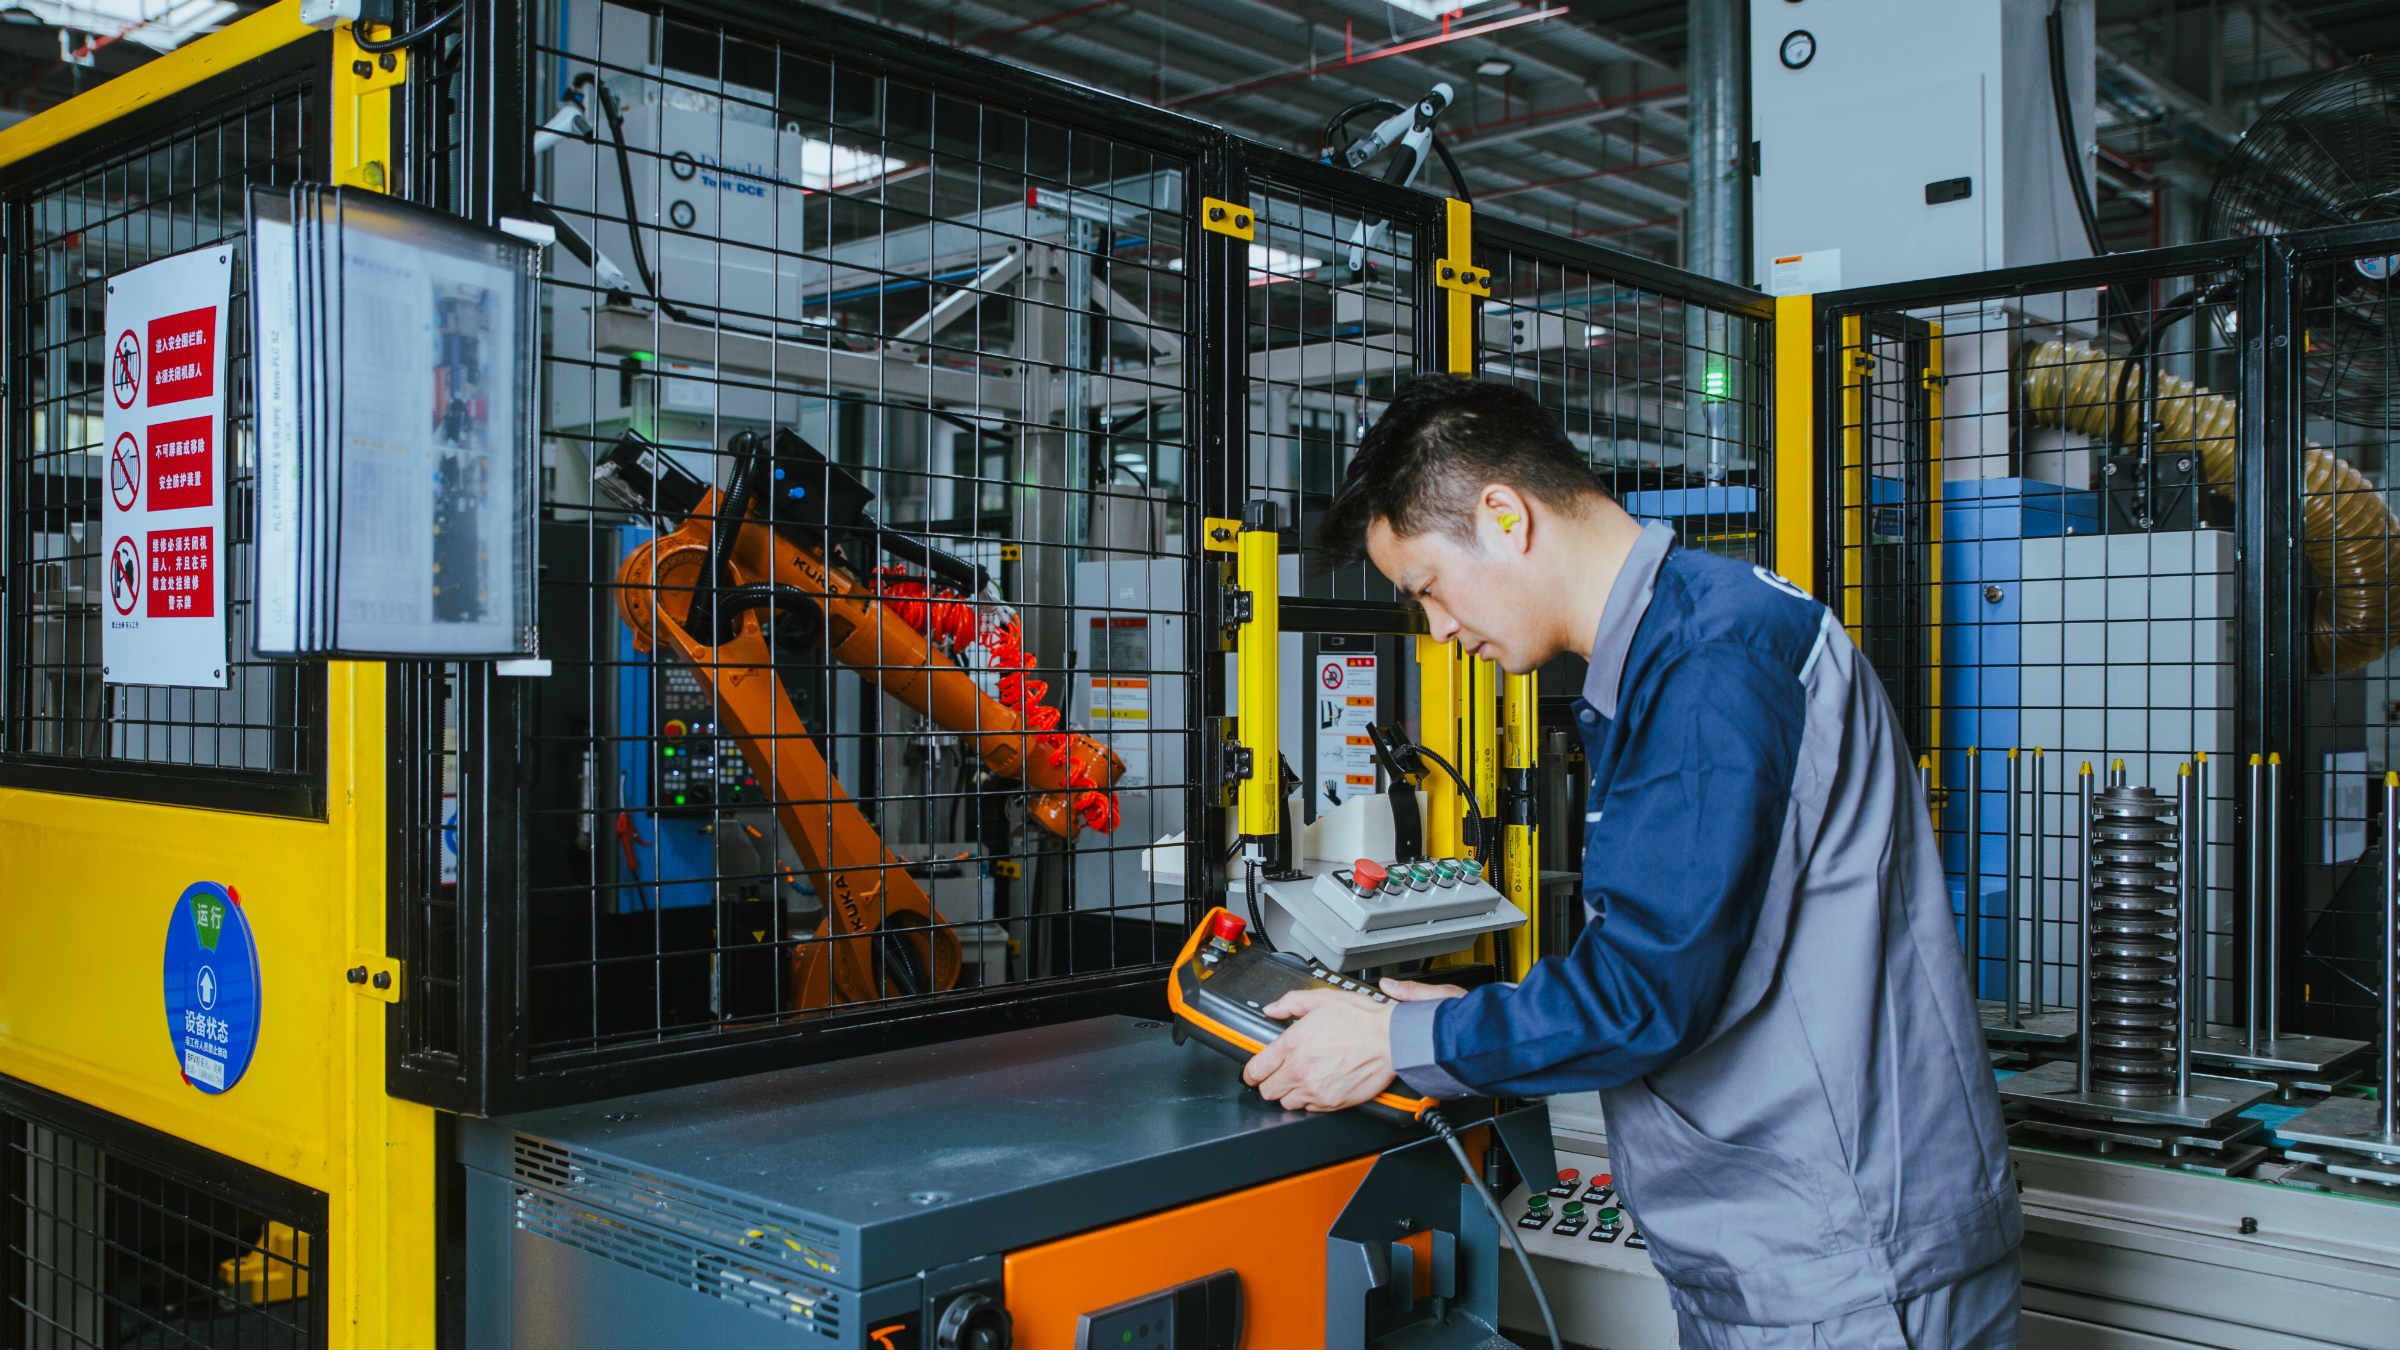 Robotic production line for flange manufacturing at GEA Flow Components site, Suzhou, China.